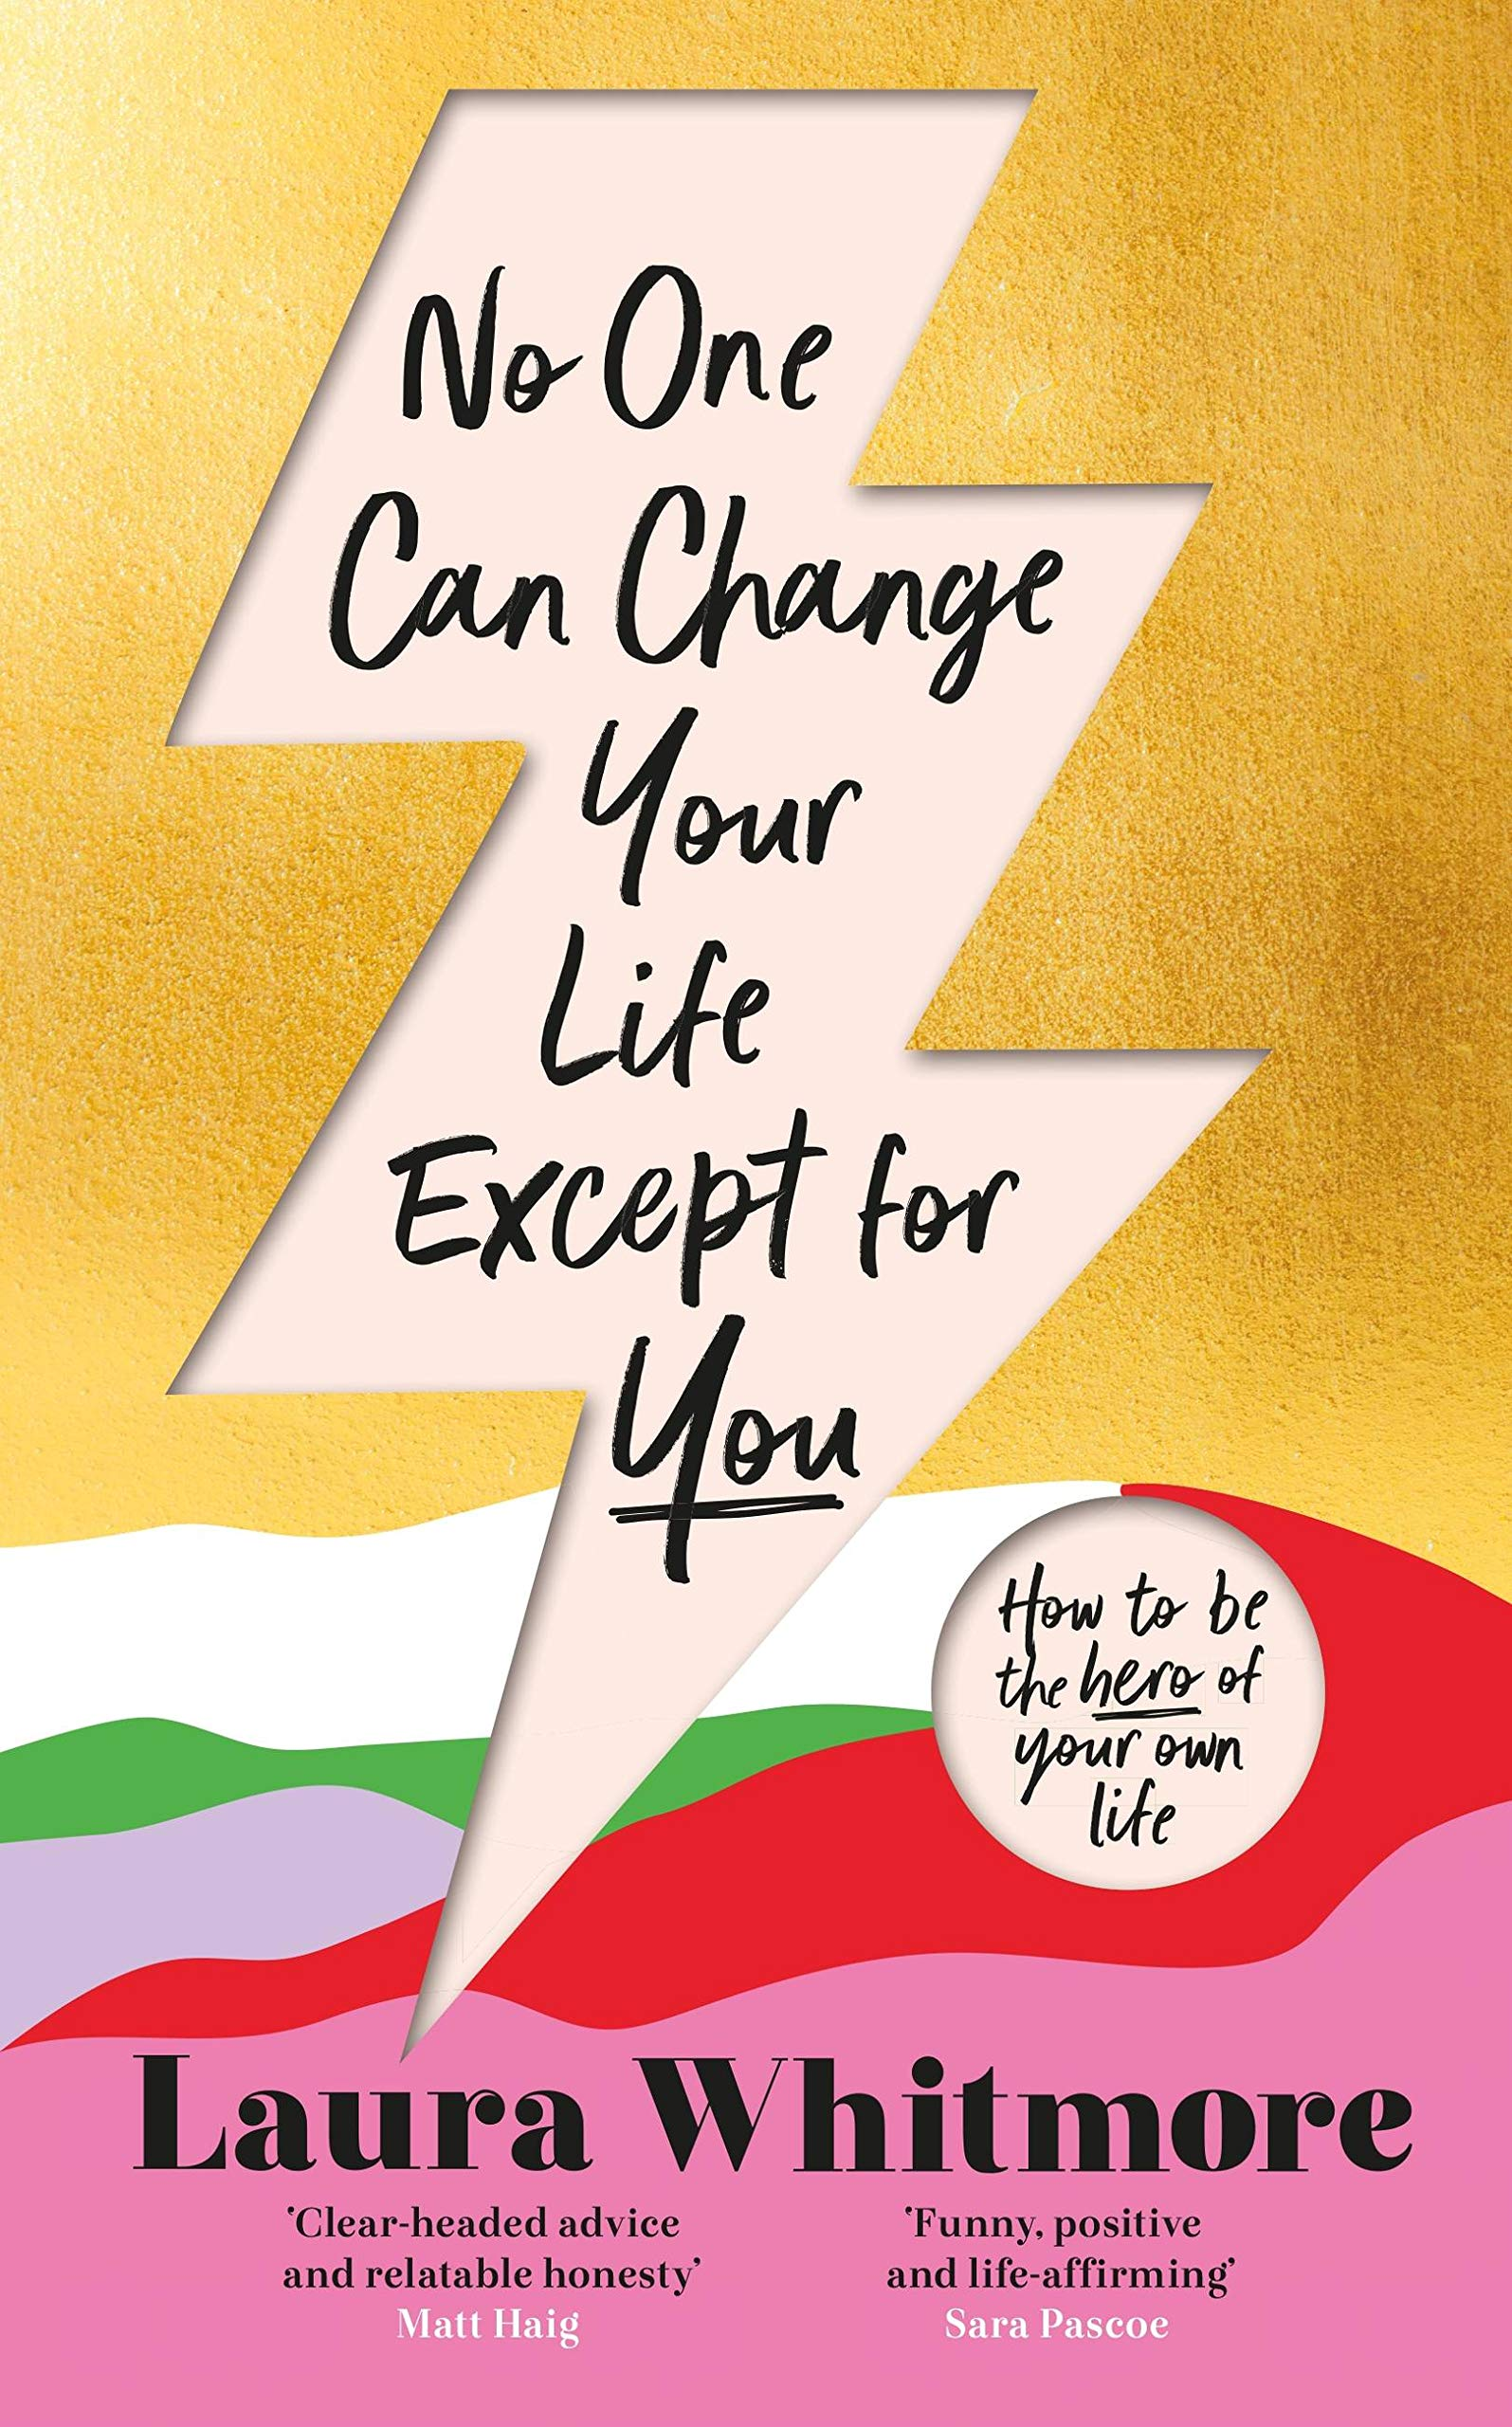 No One Can Change Your Life Except For You: The Sunday Times bestseller:  Amazon.co.uk: Whitmore, Laura: 9781398701670: Books